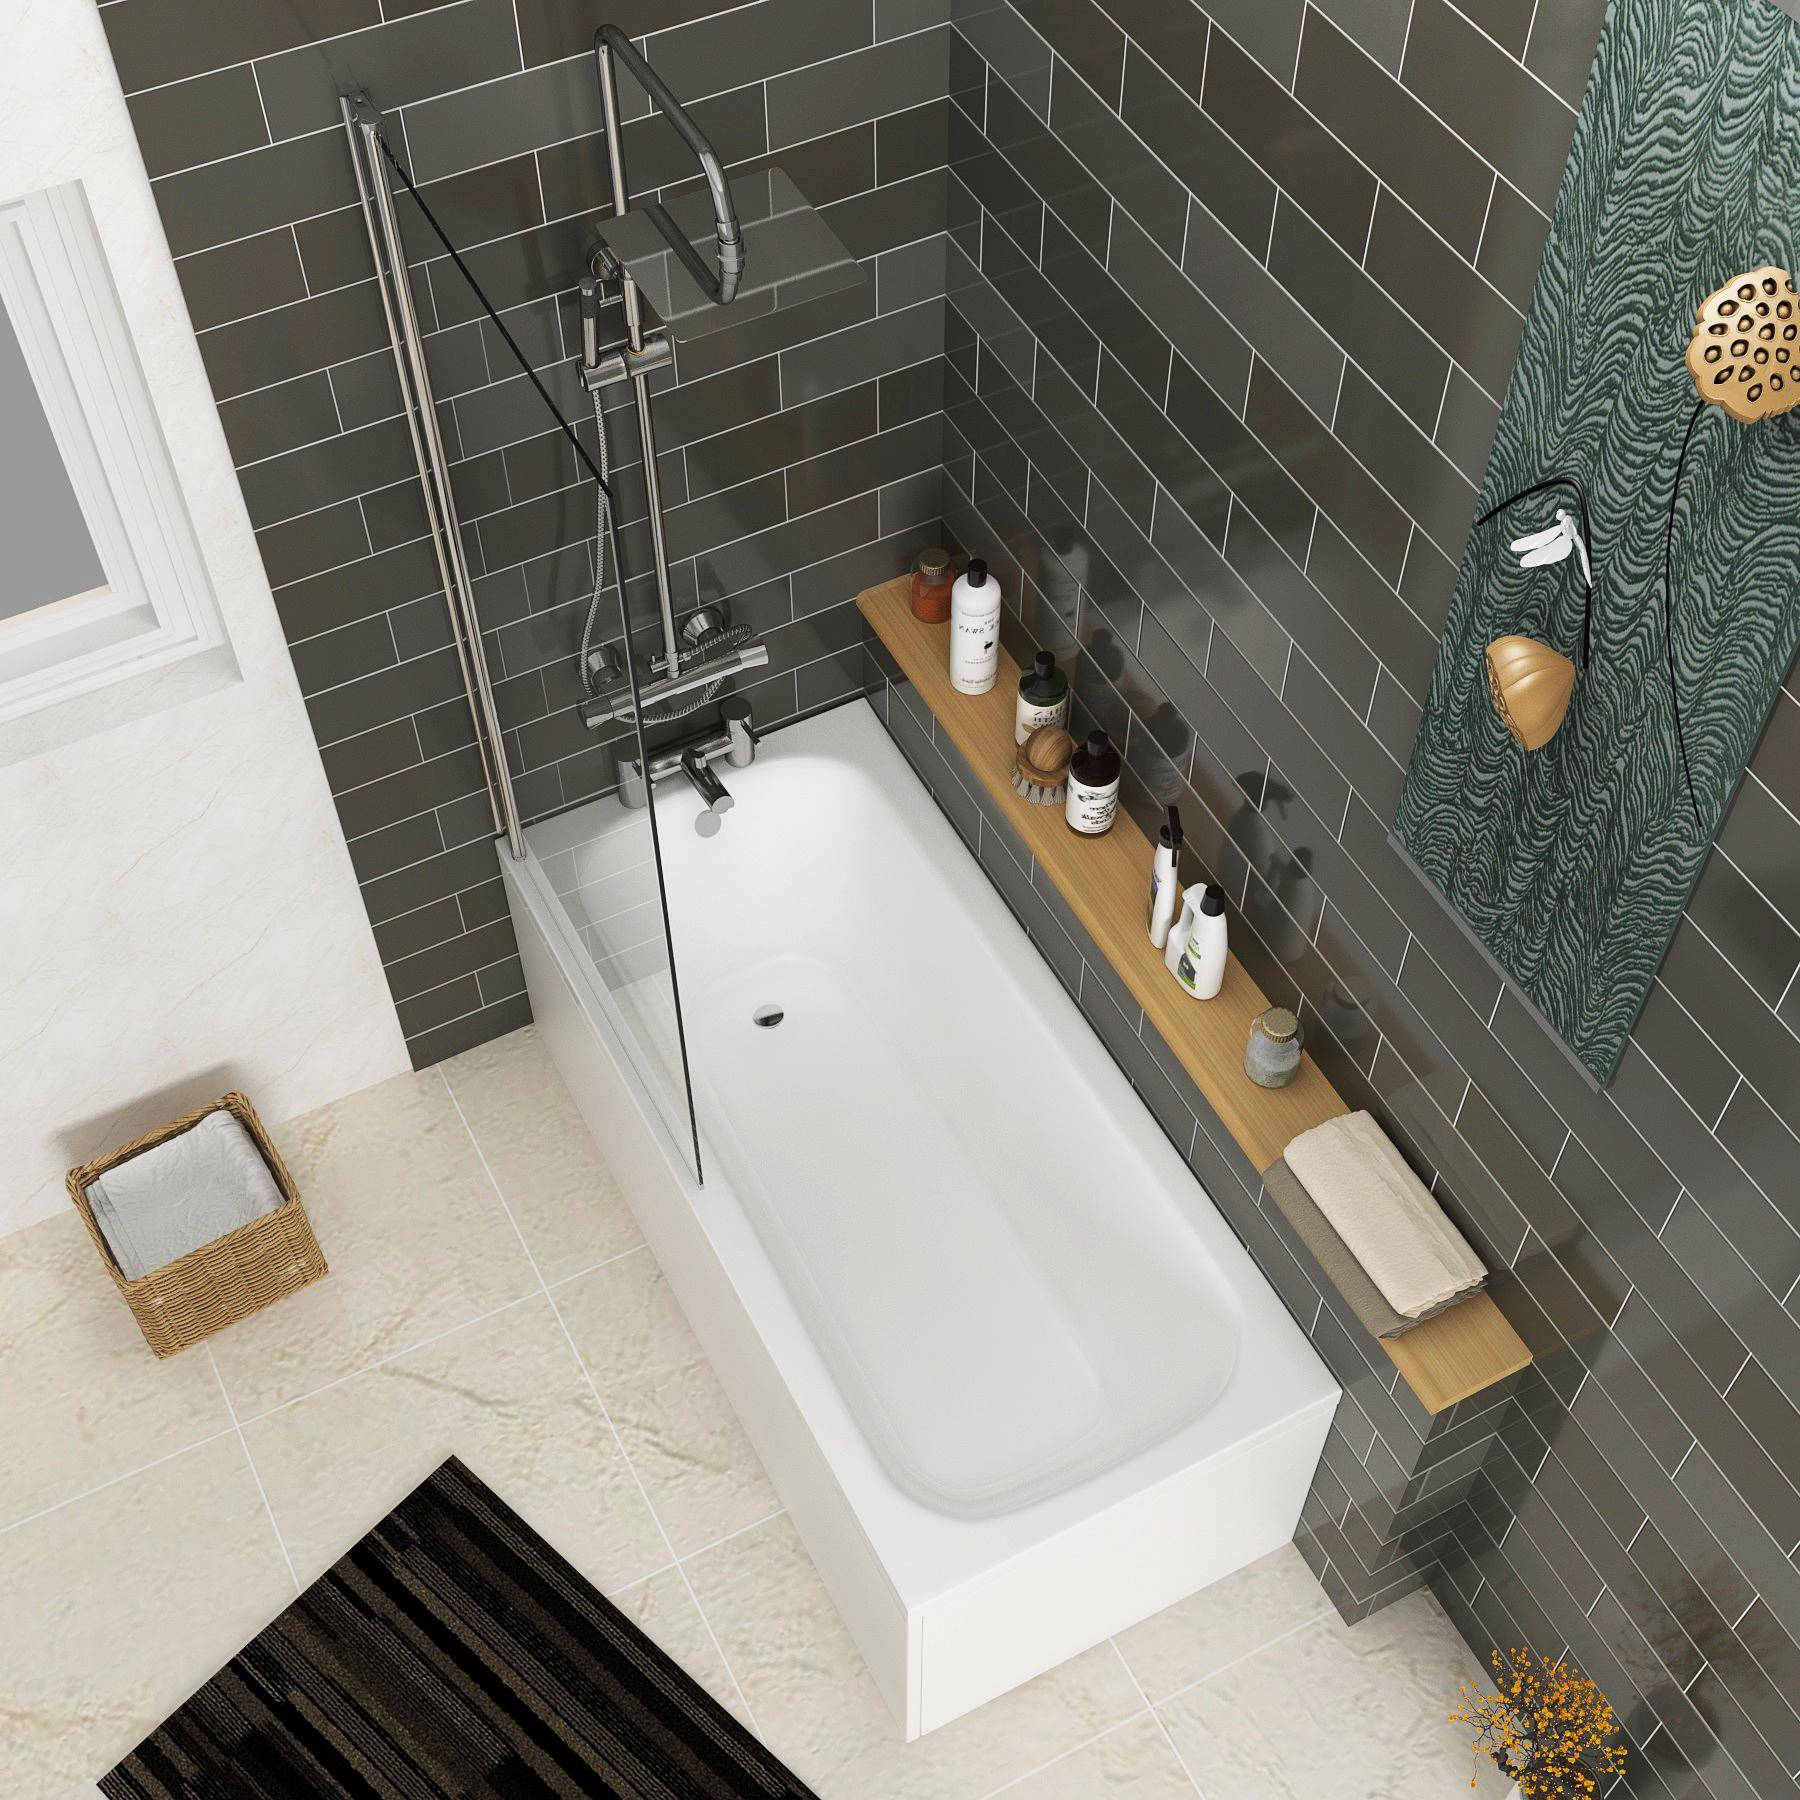 Royal Bathrooms Breeze Round Single Ended Shower Bath 1800 x 800mm Acrylic + Square Shower Bath Screen